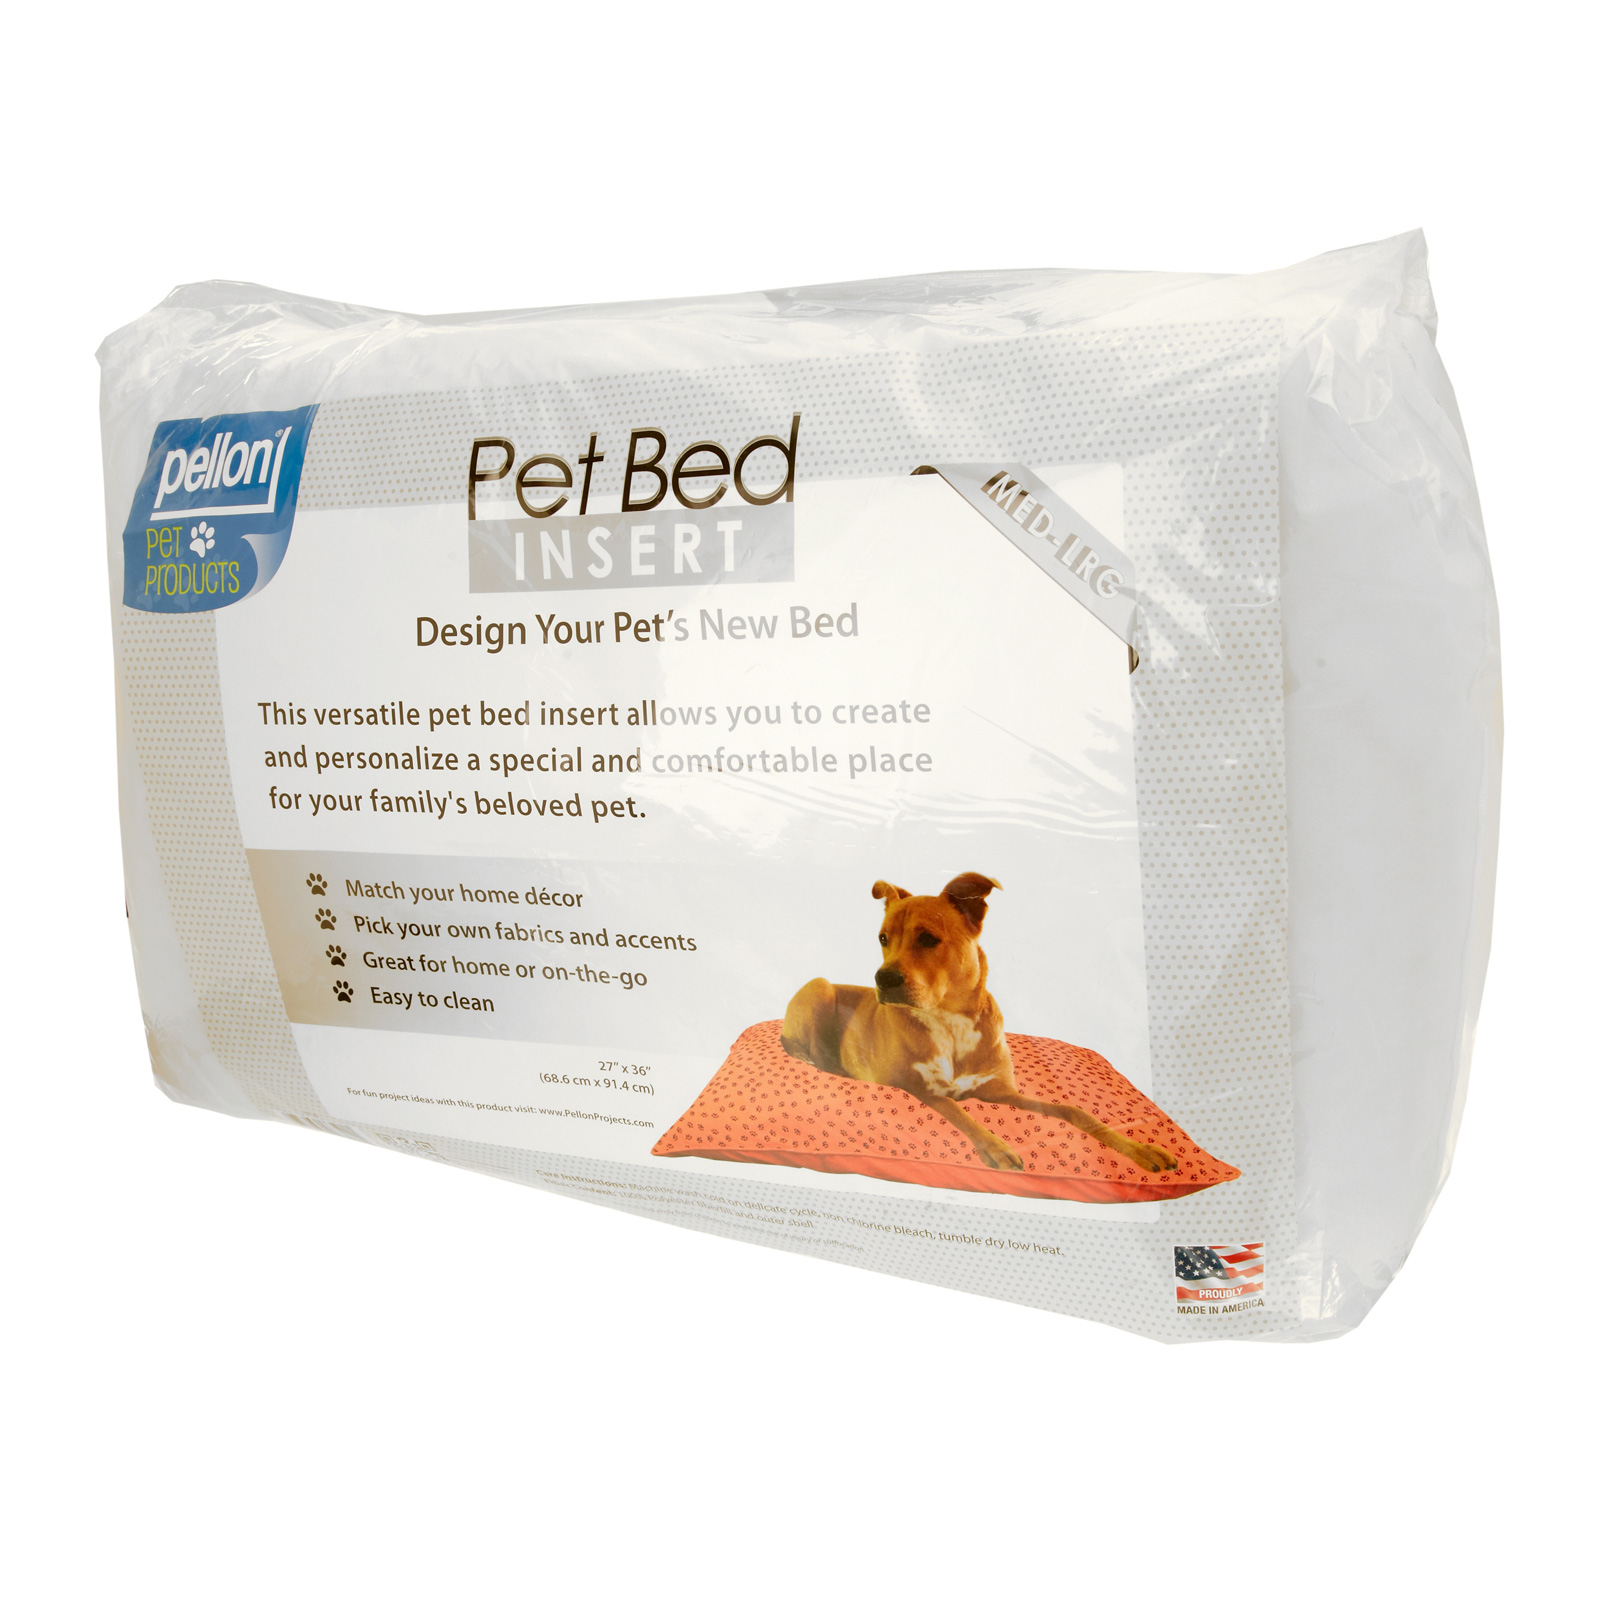 Image of Pellon Pet Bed Insert Medium/Large